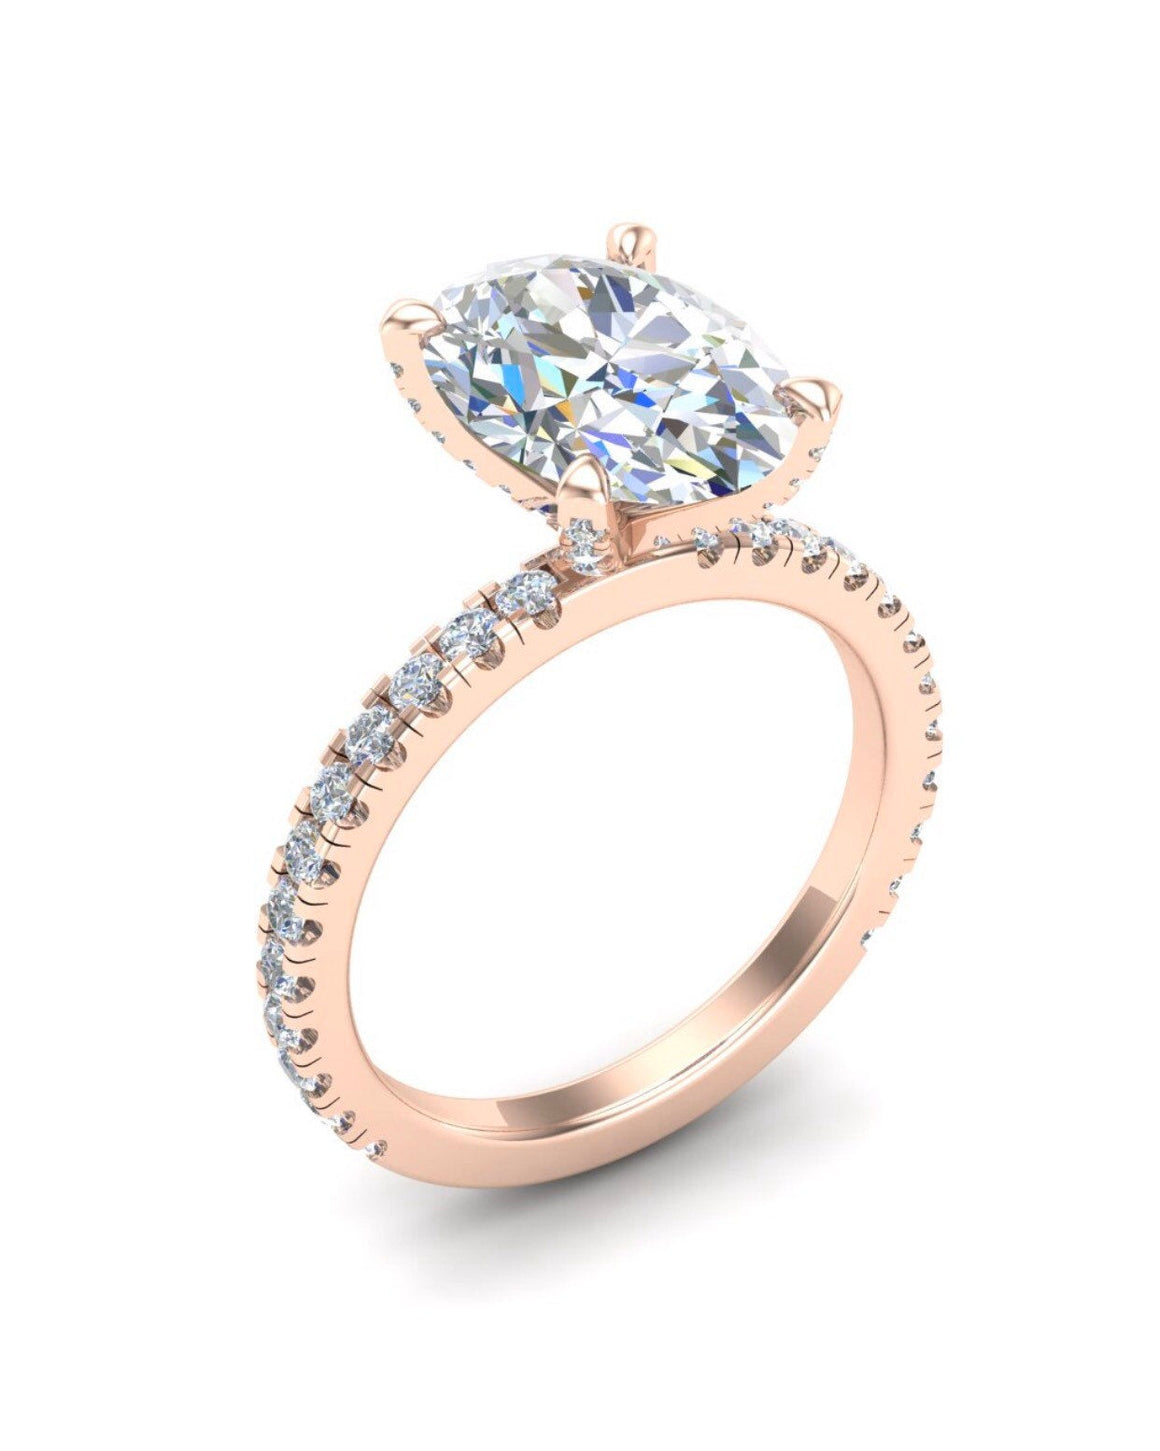 Moissanite Oval Brilliant Engagement Ring 18kt Rose Gold